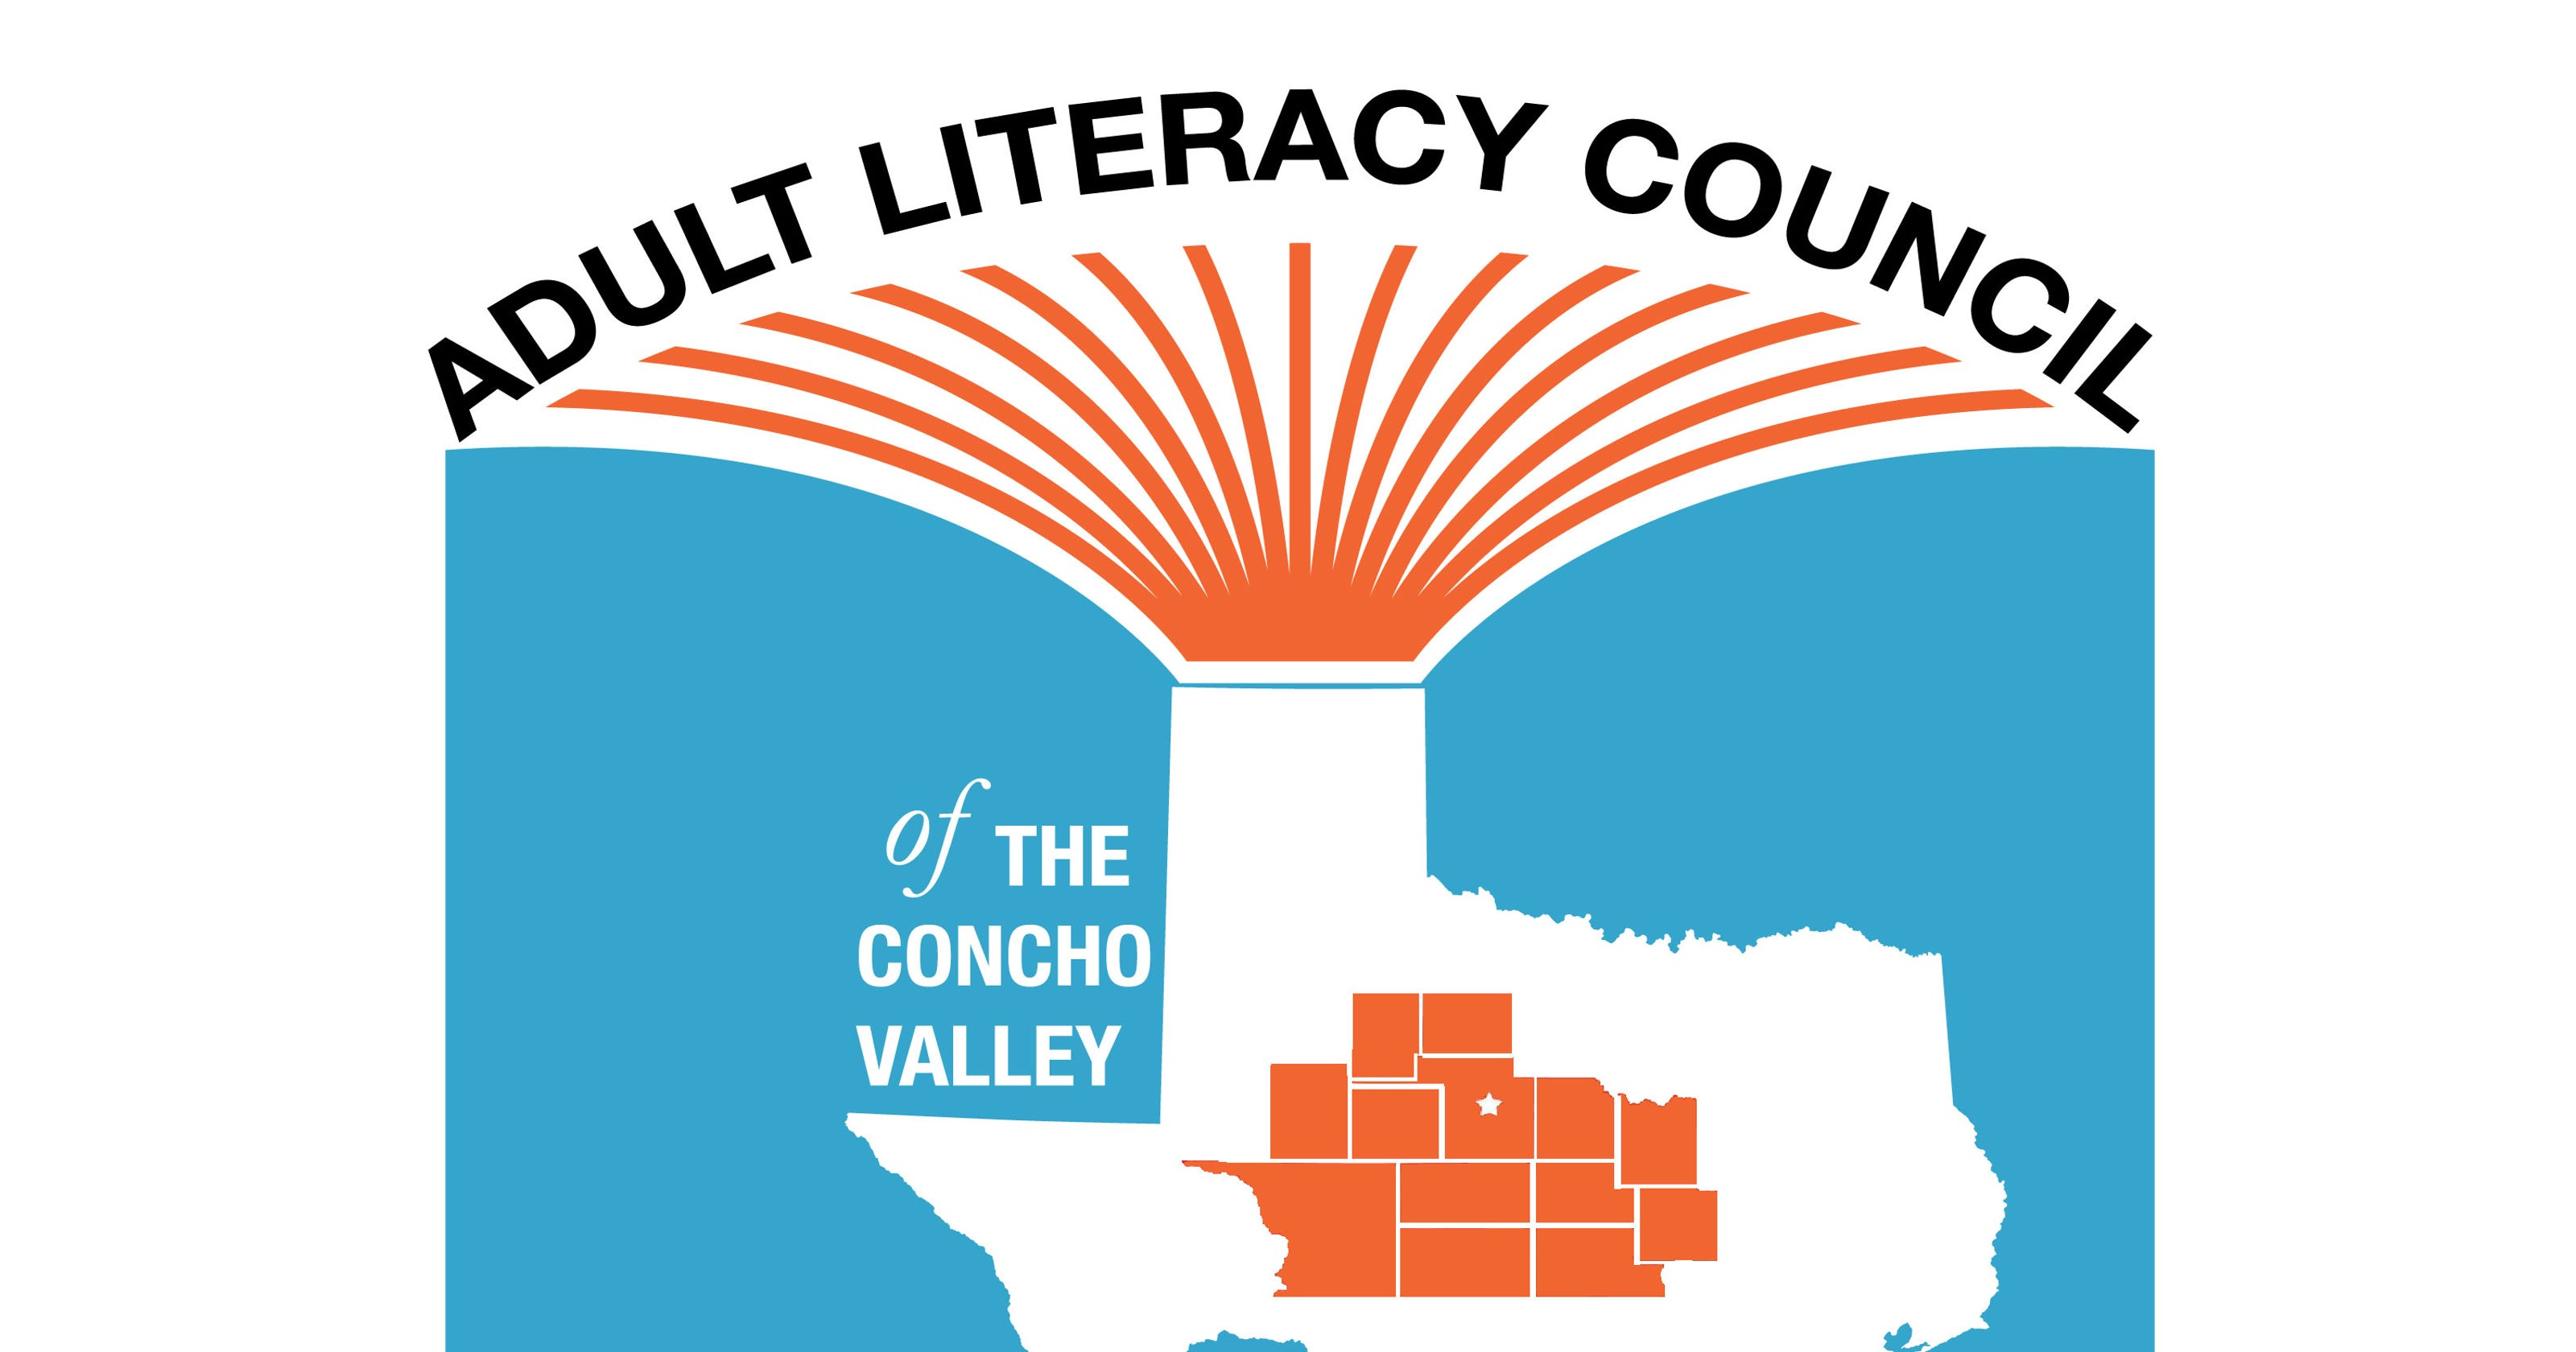 Literacy Council Event To Introduce New High School